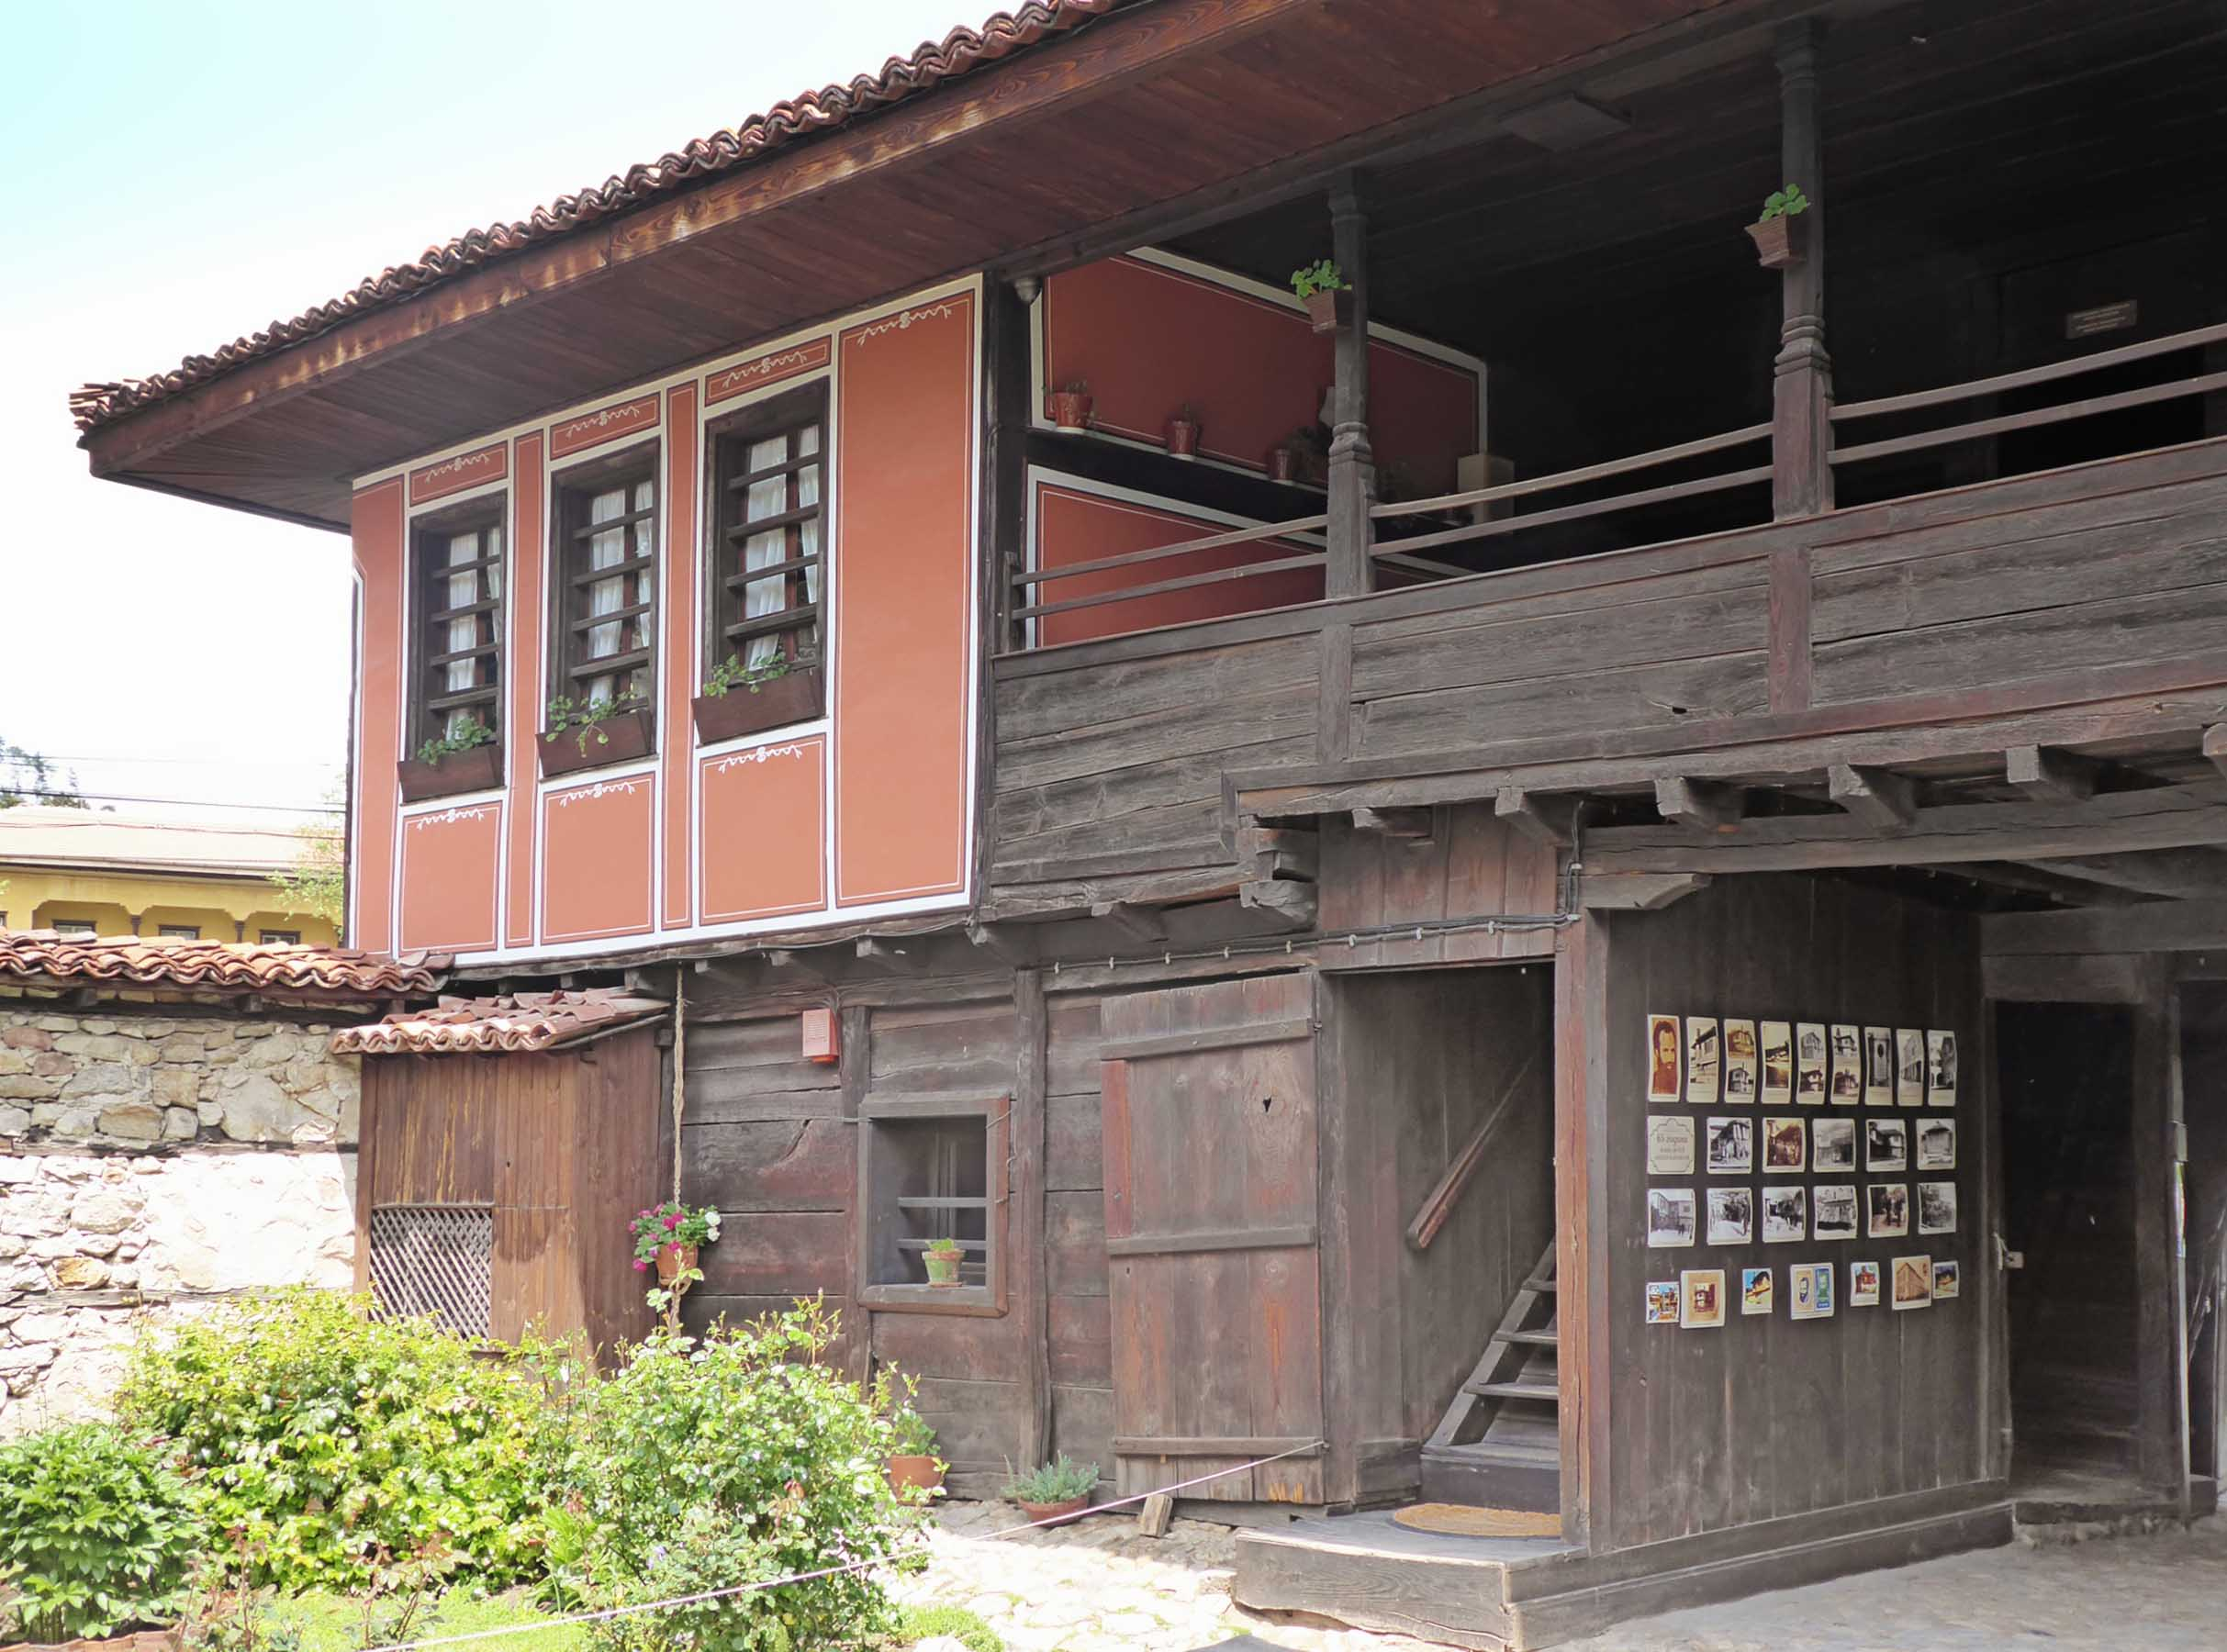 Wooden house with terracotta coloured painted walls